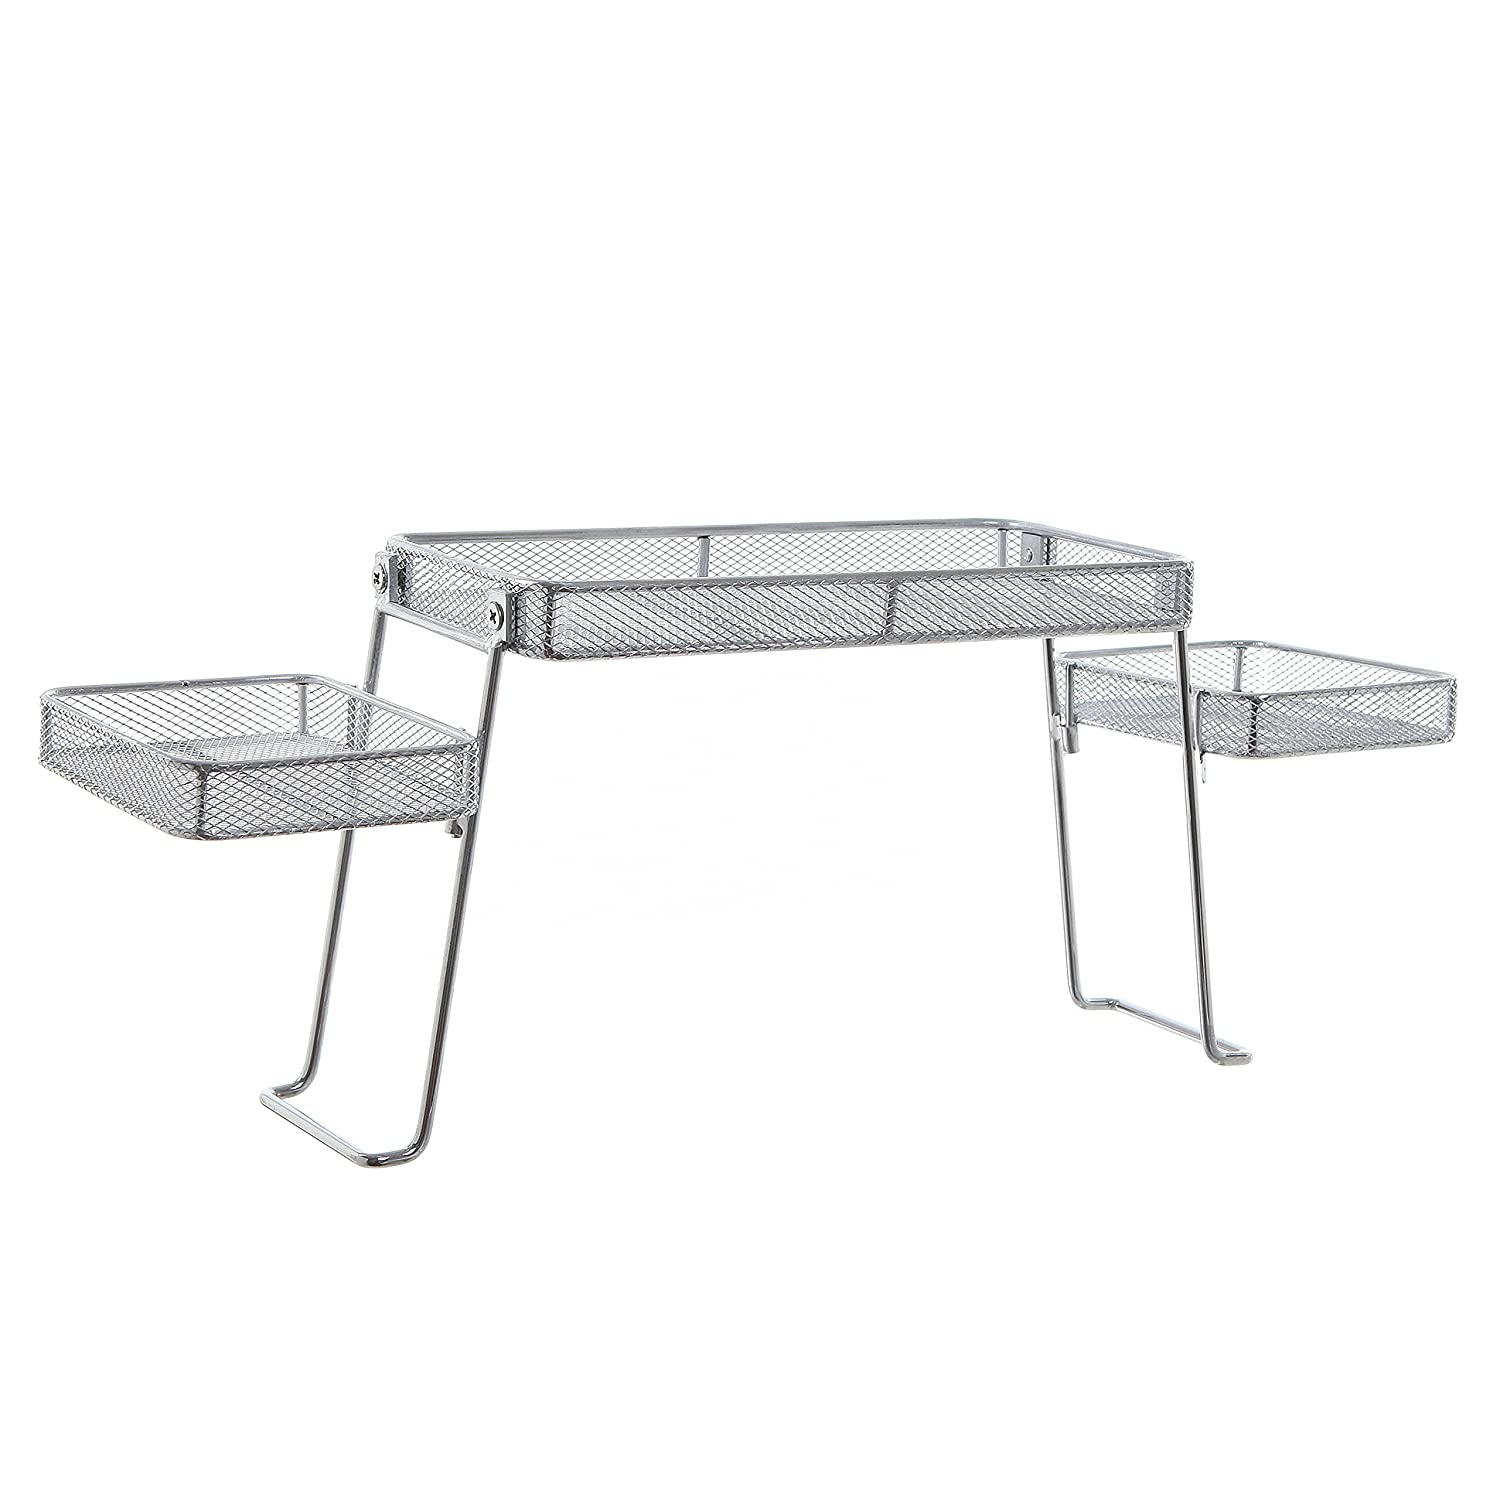 Modern Perforated Chrome Plated Metal Countertop Organizer//Bathroom Tray with 3 Shelves